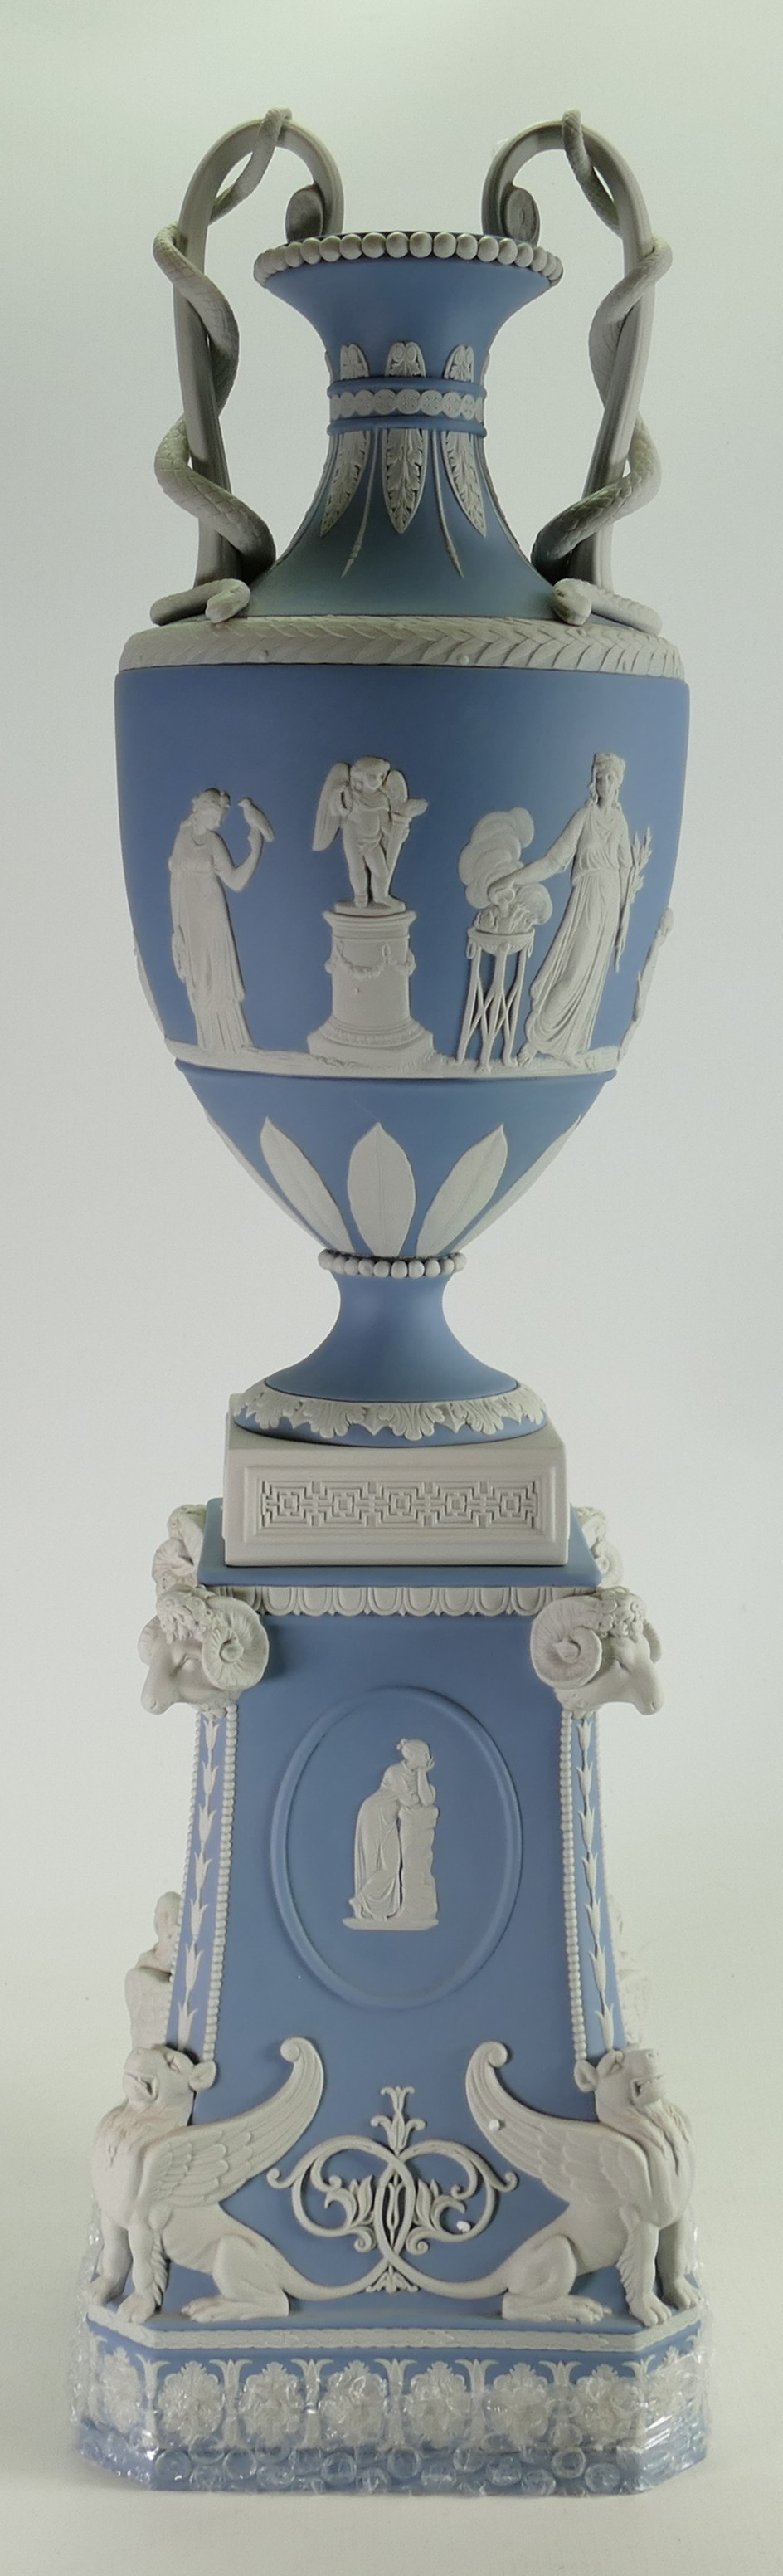 Wedgwood white on pale blue limited edition snake handled vase and stand: Height 71cm with